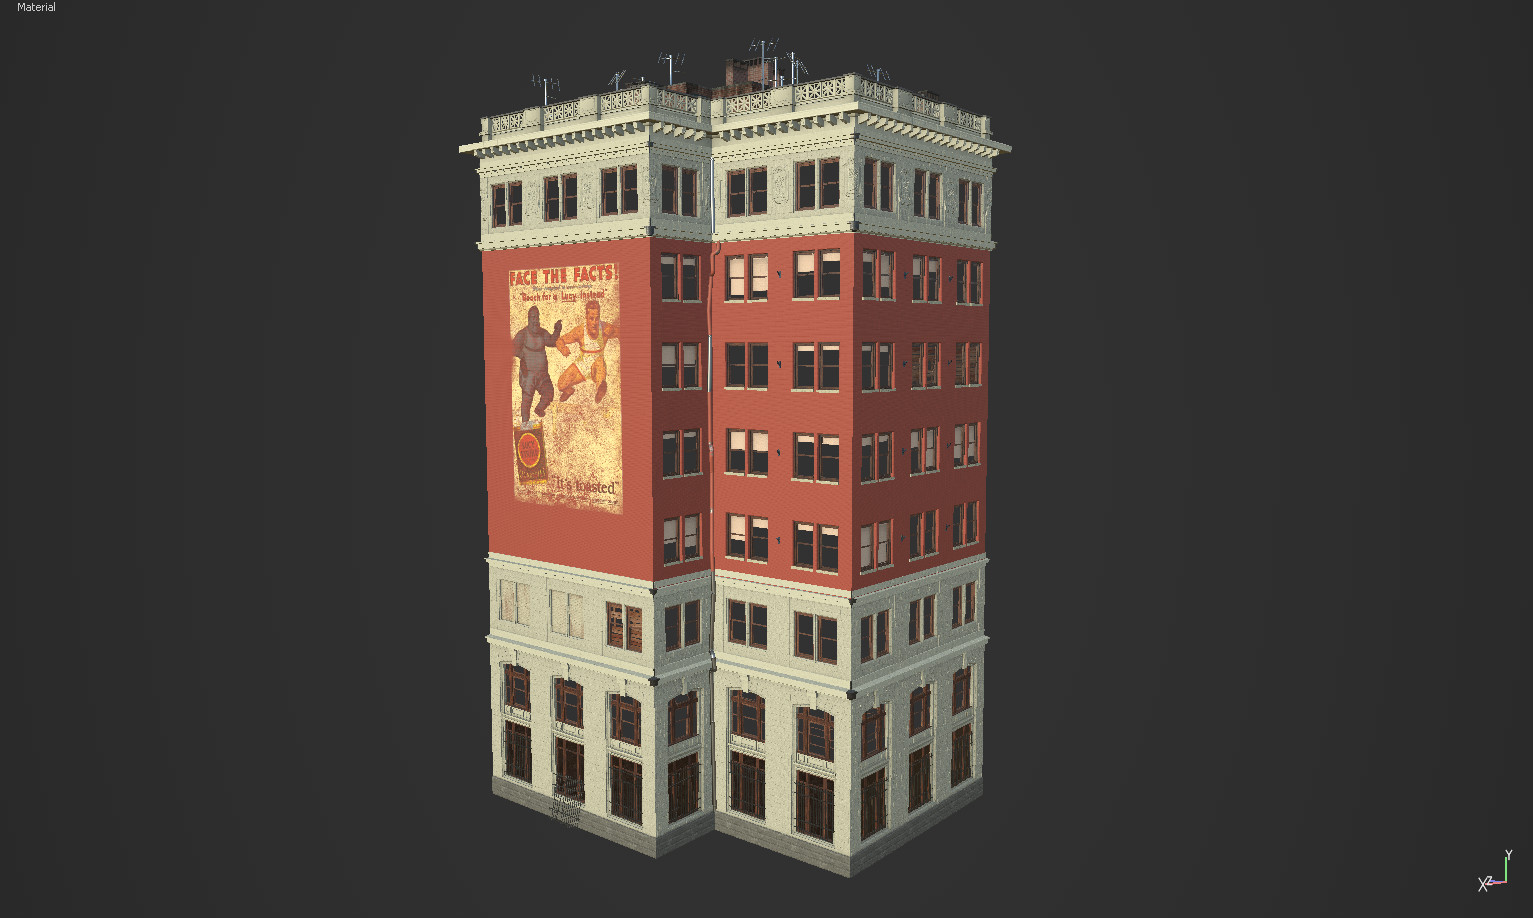 Substance painter render of an earlier version of the buildings textures. It has the bricks painted red pinkish.